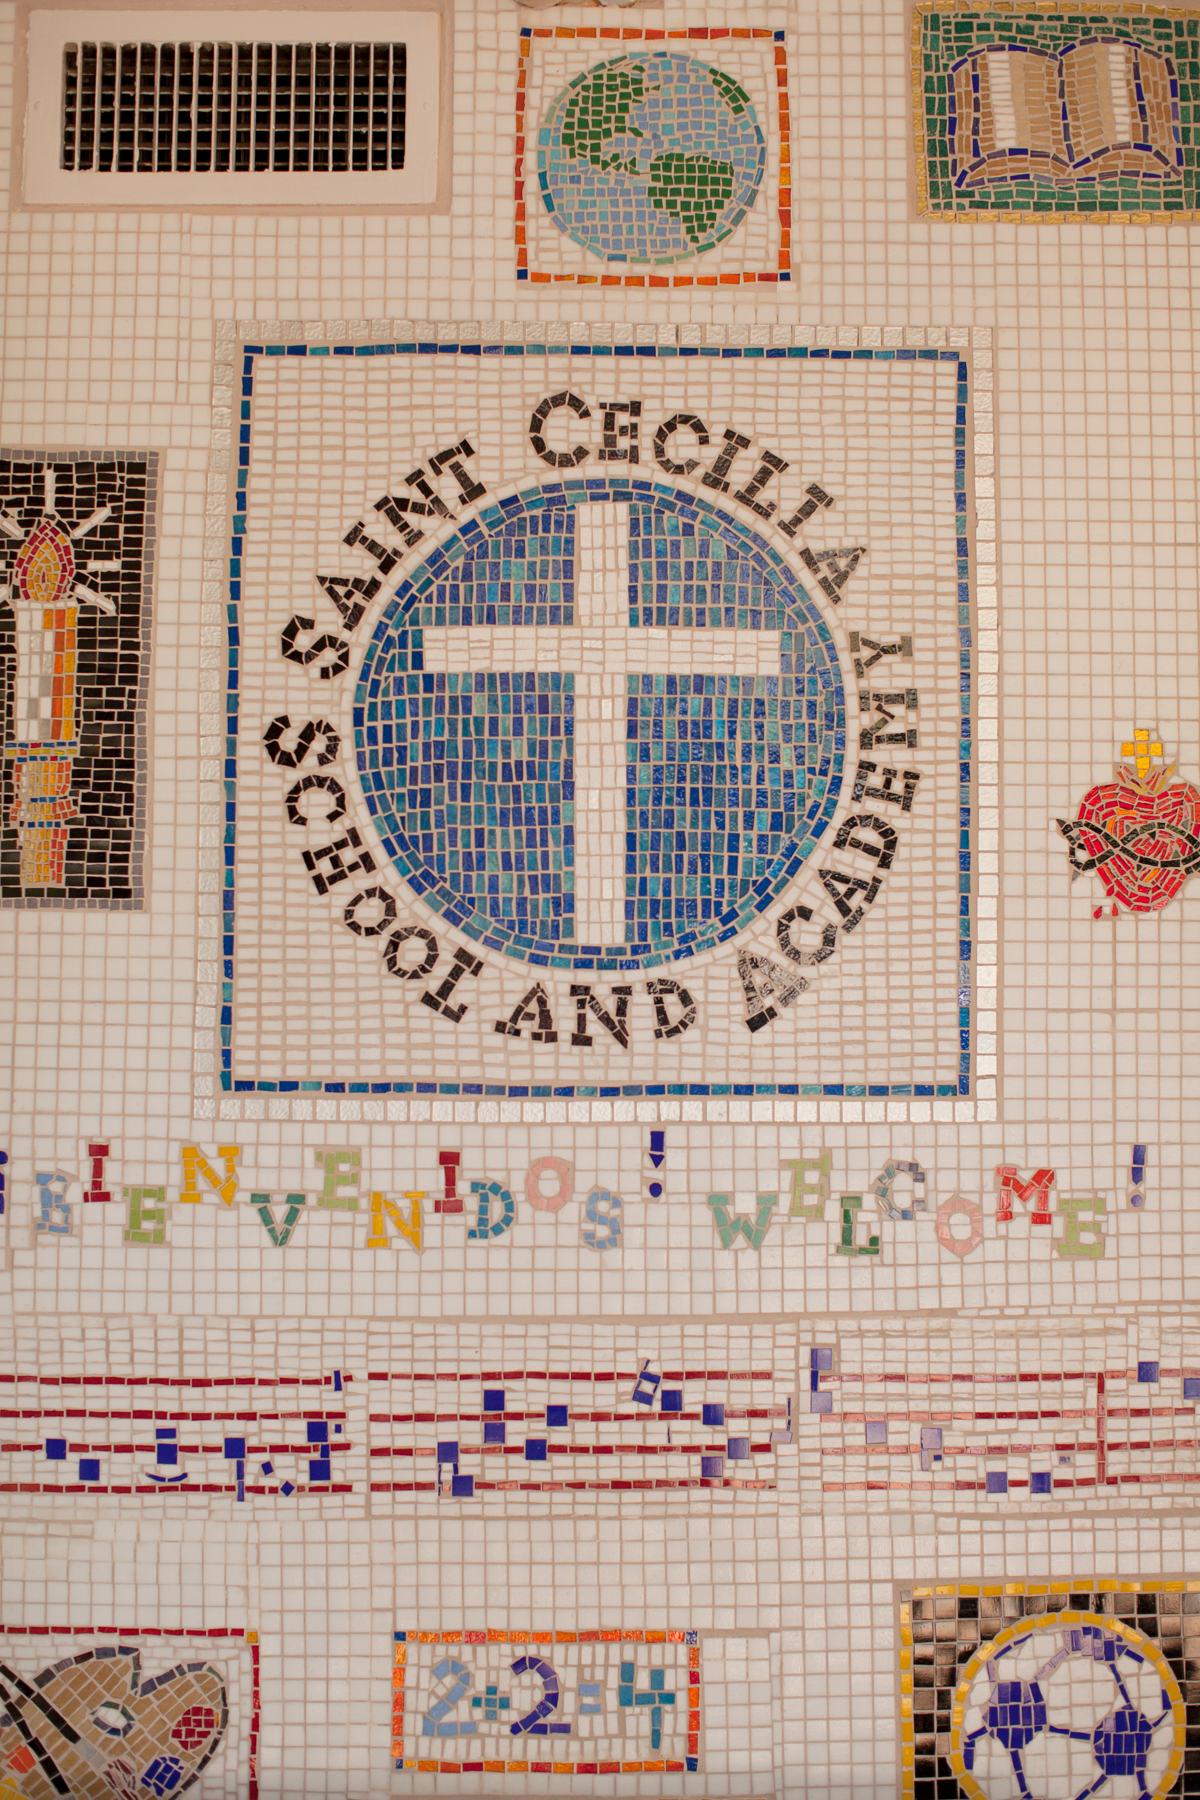 St. Cecilia Logo on Wall